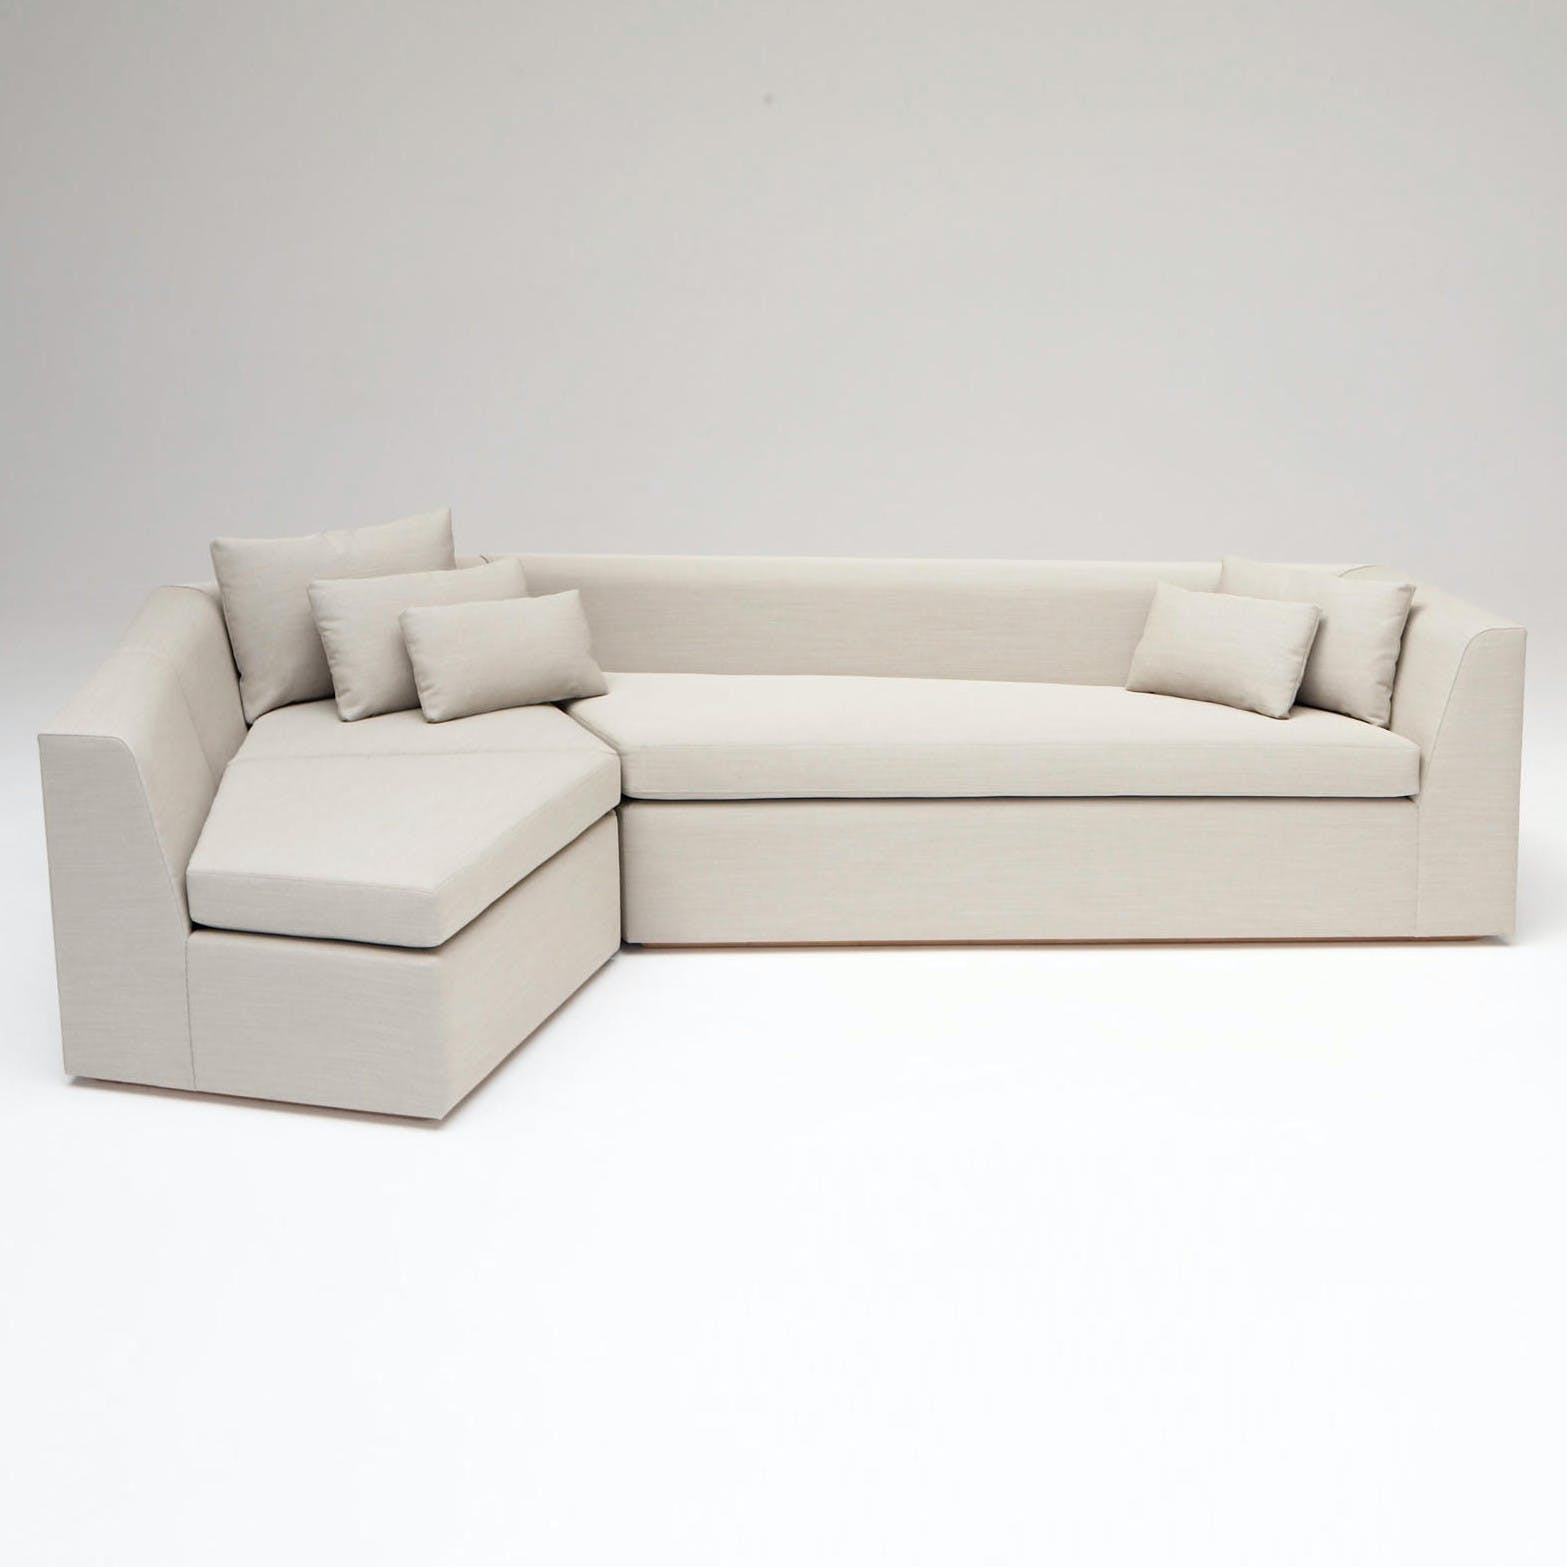 Phase Design Pangaea Sectional Angle Haute Living